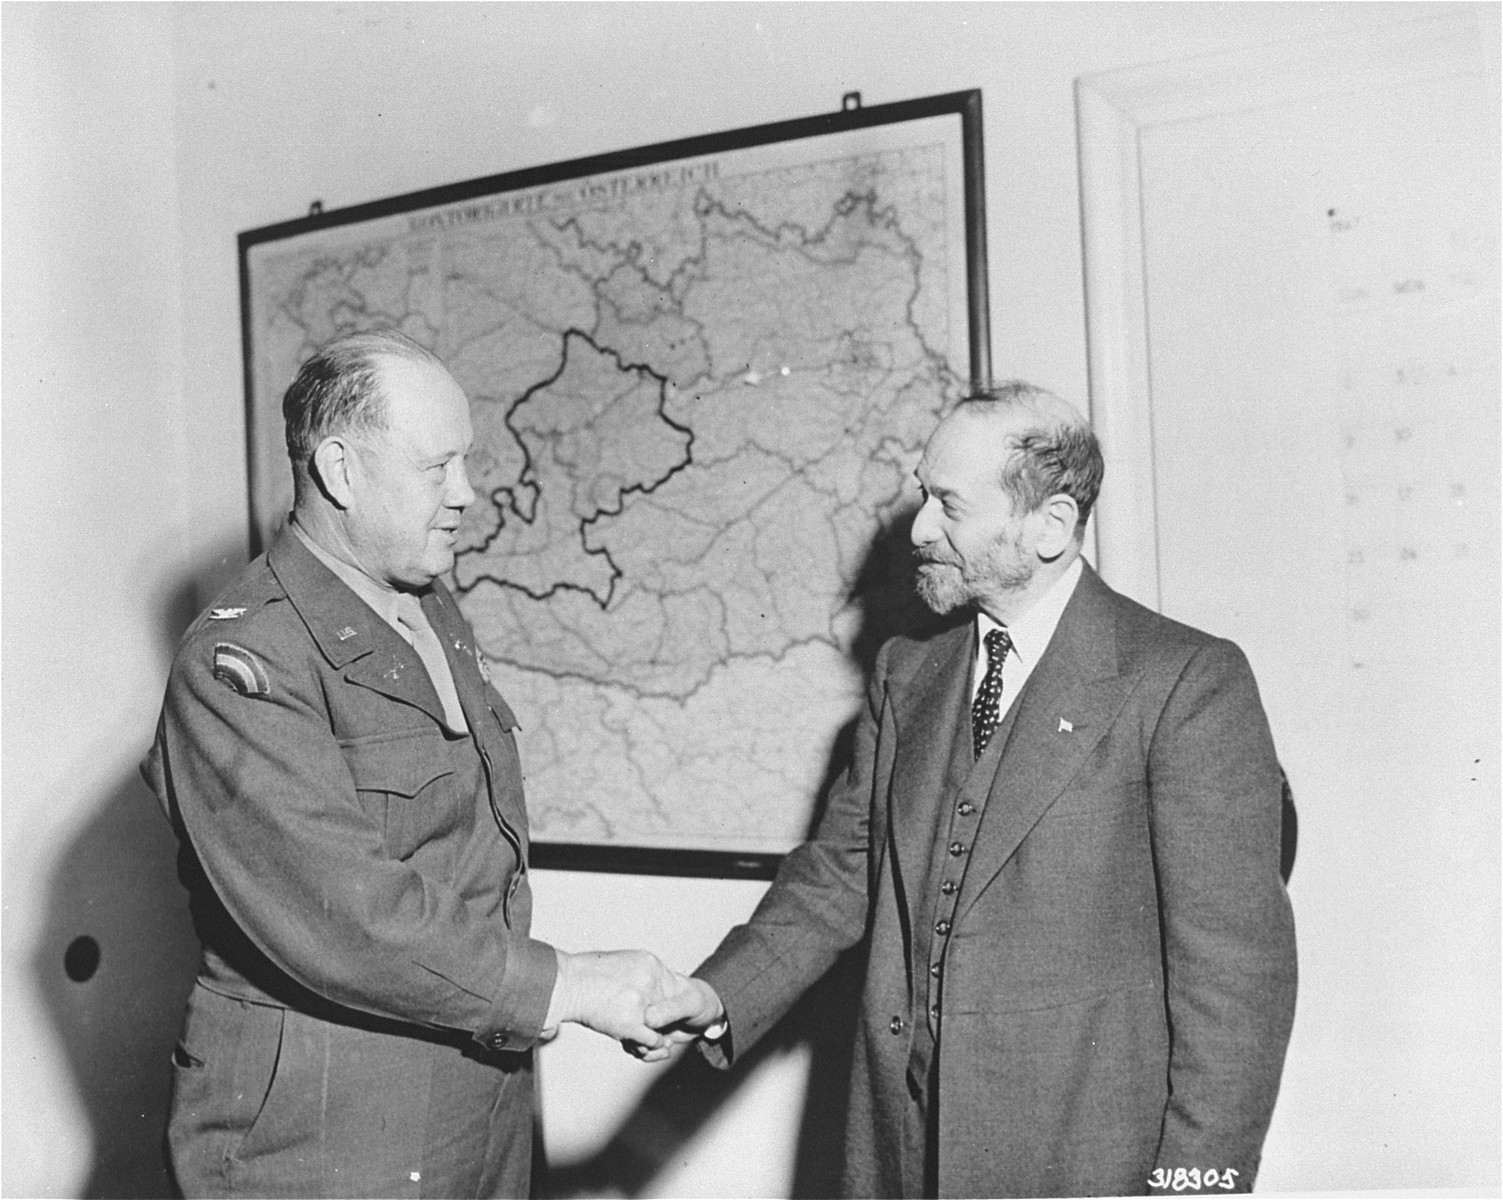 Rabbi Ephraim Epstein, one of the leading Jewish clergymen in the United States, is greeted upon his arrival by Col. Henning Linden, Chief of Staff, Zone Command, Austria.